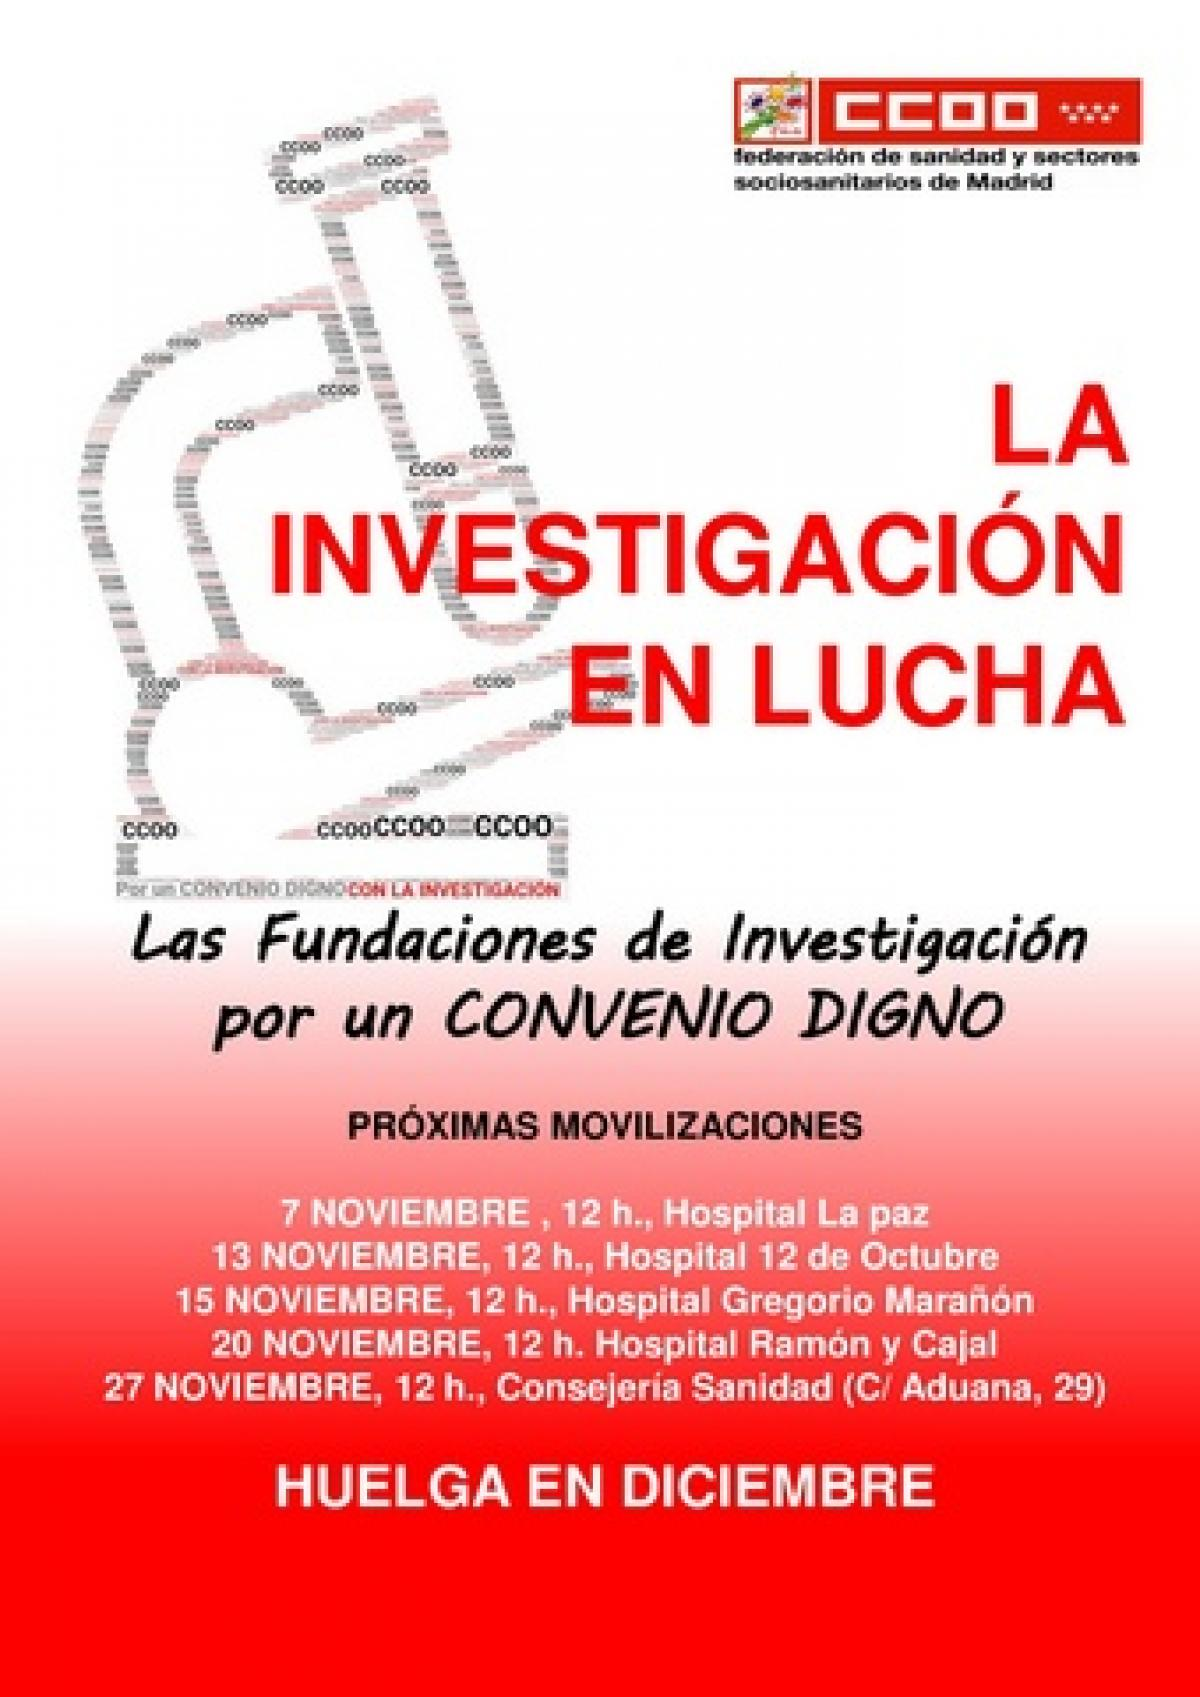 Cartel movilizaciones.